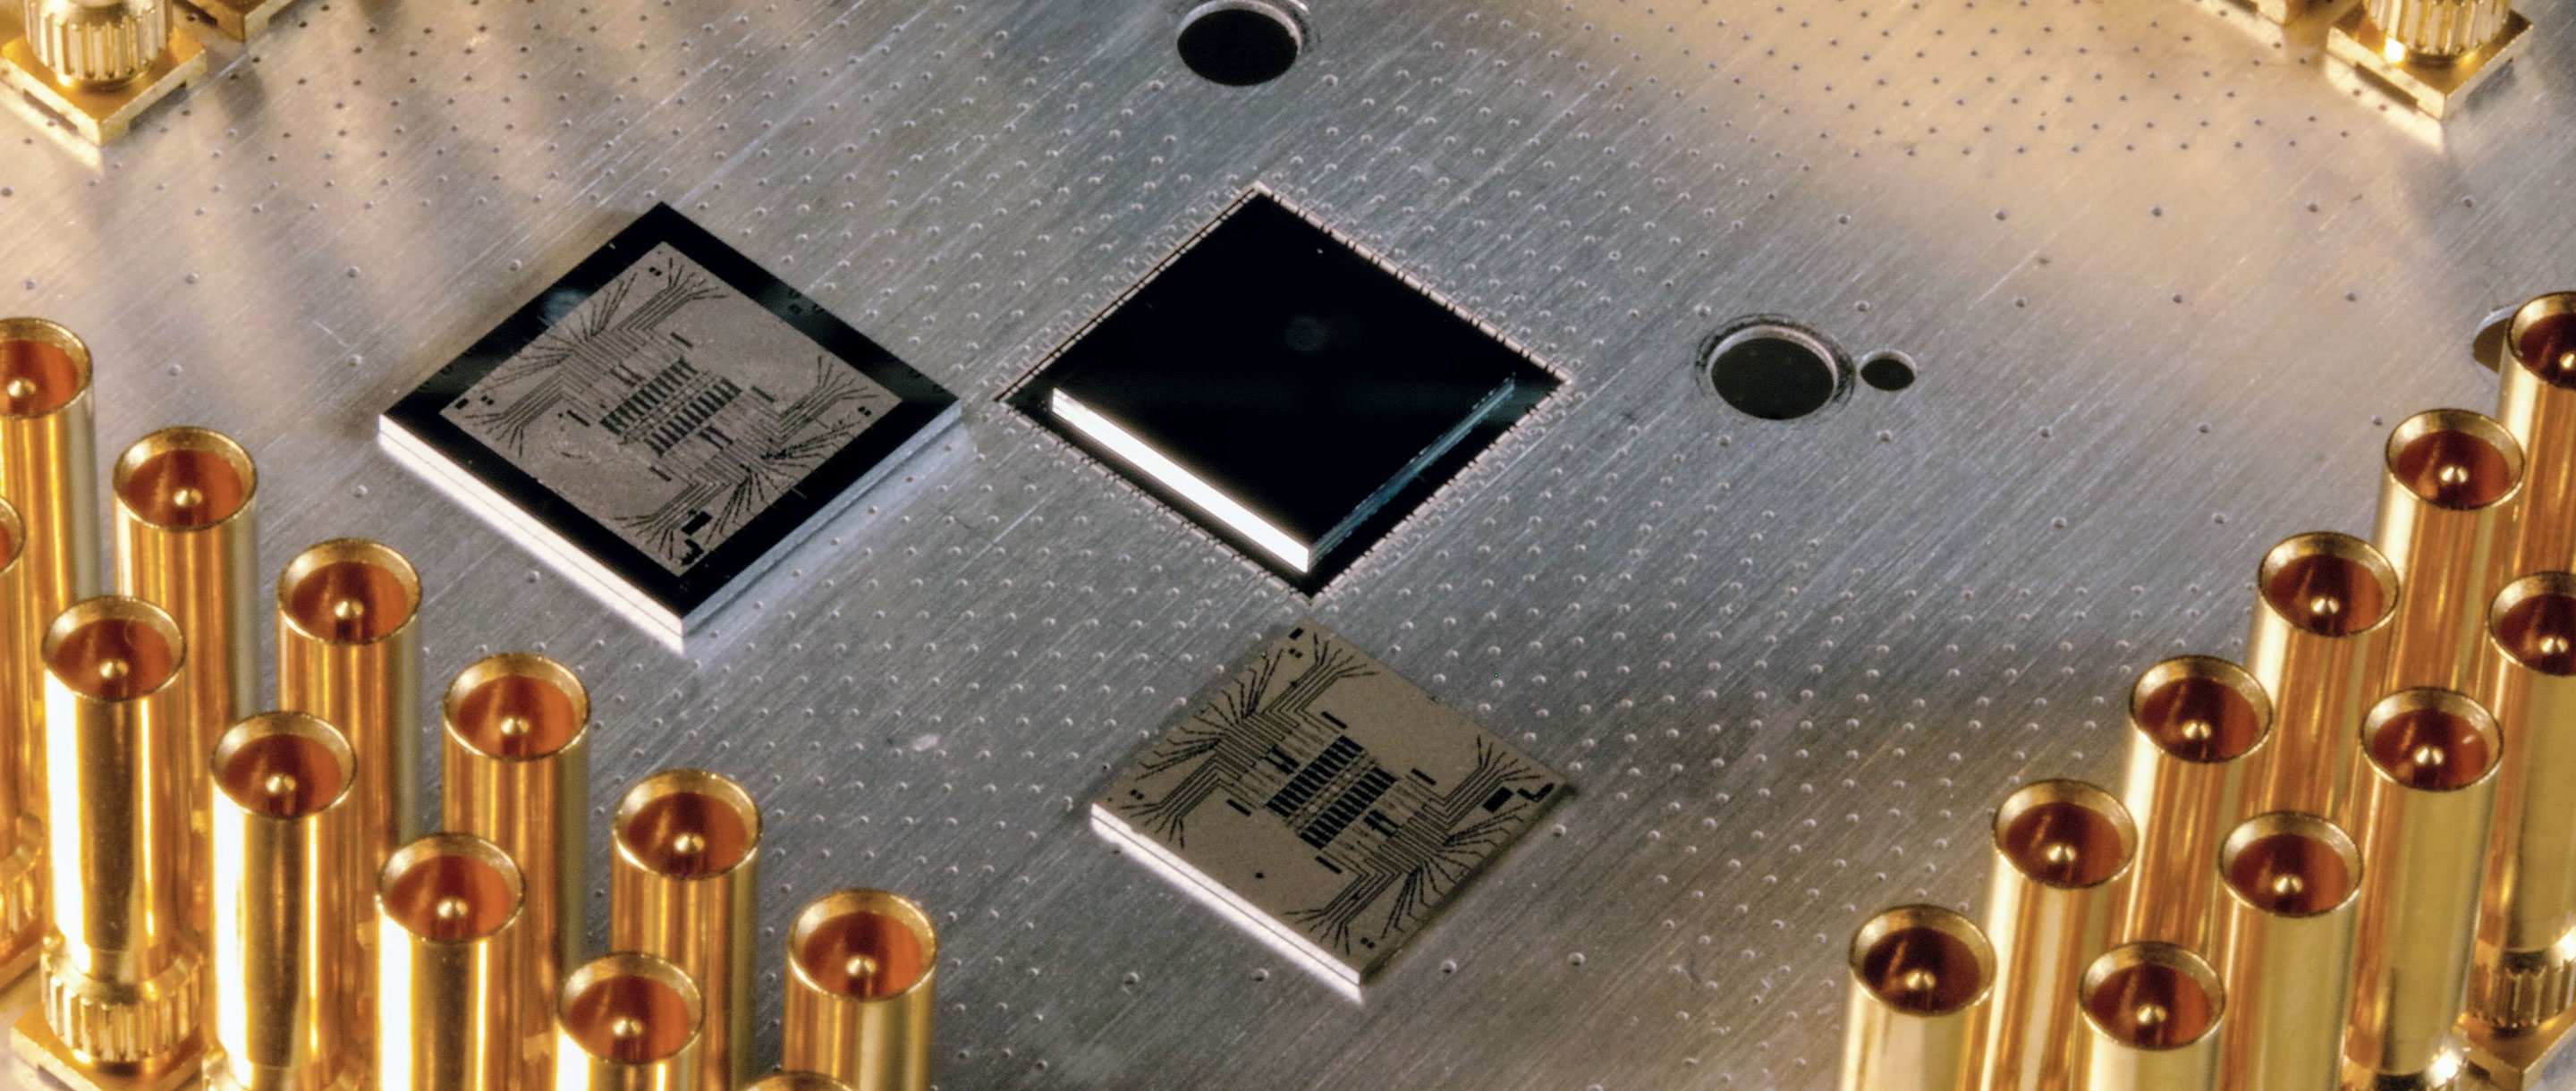 Photo of a silver metal plate with chips mounted on its surface.